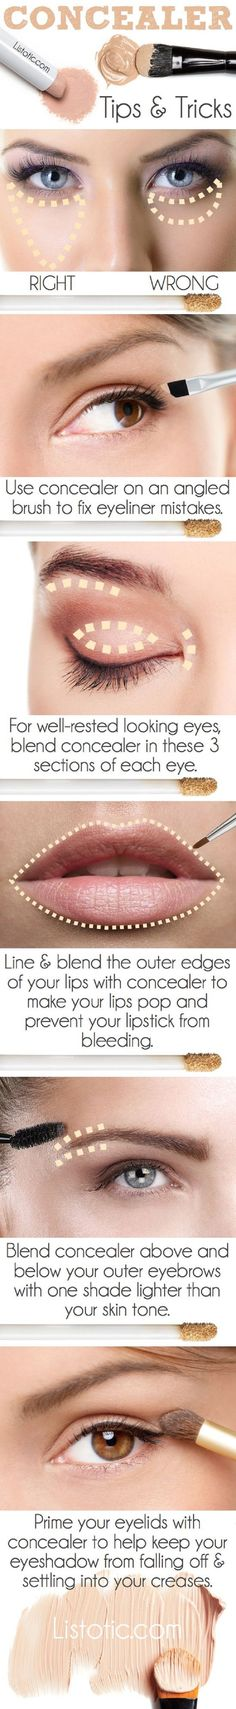 natural-hairs.com... Use Your Concealer The Right Way - 13 Best Makeup Tutorials and Infographics for Beginners natural-hairs.com...